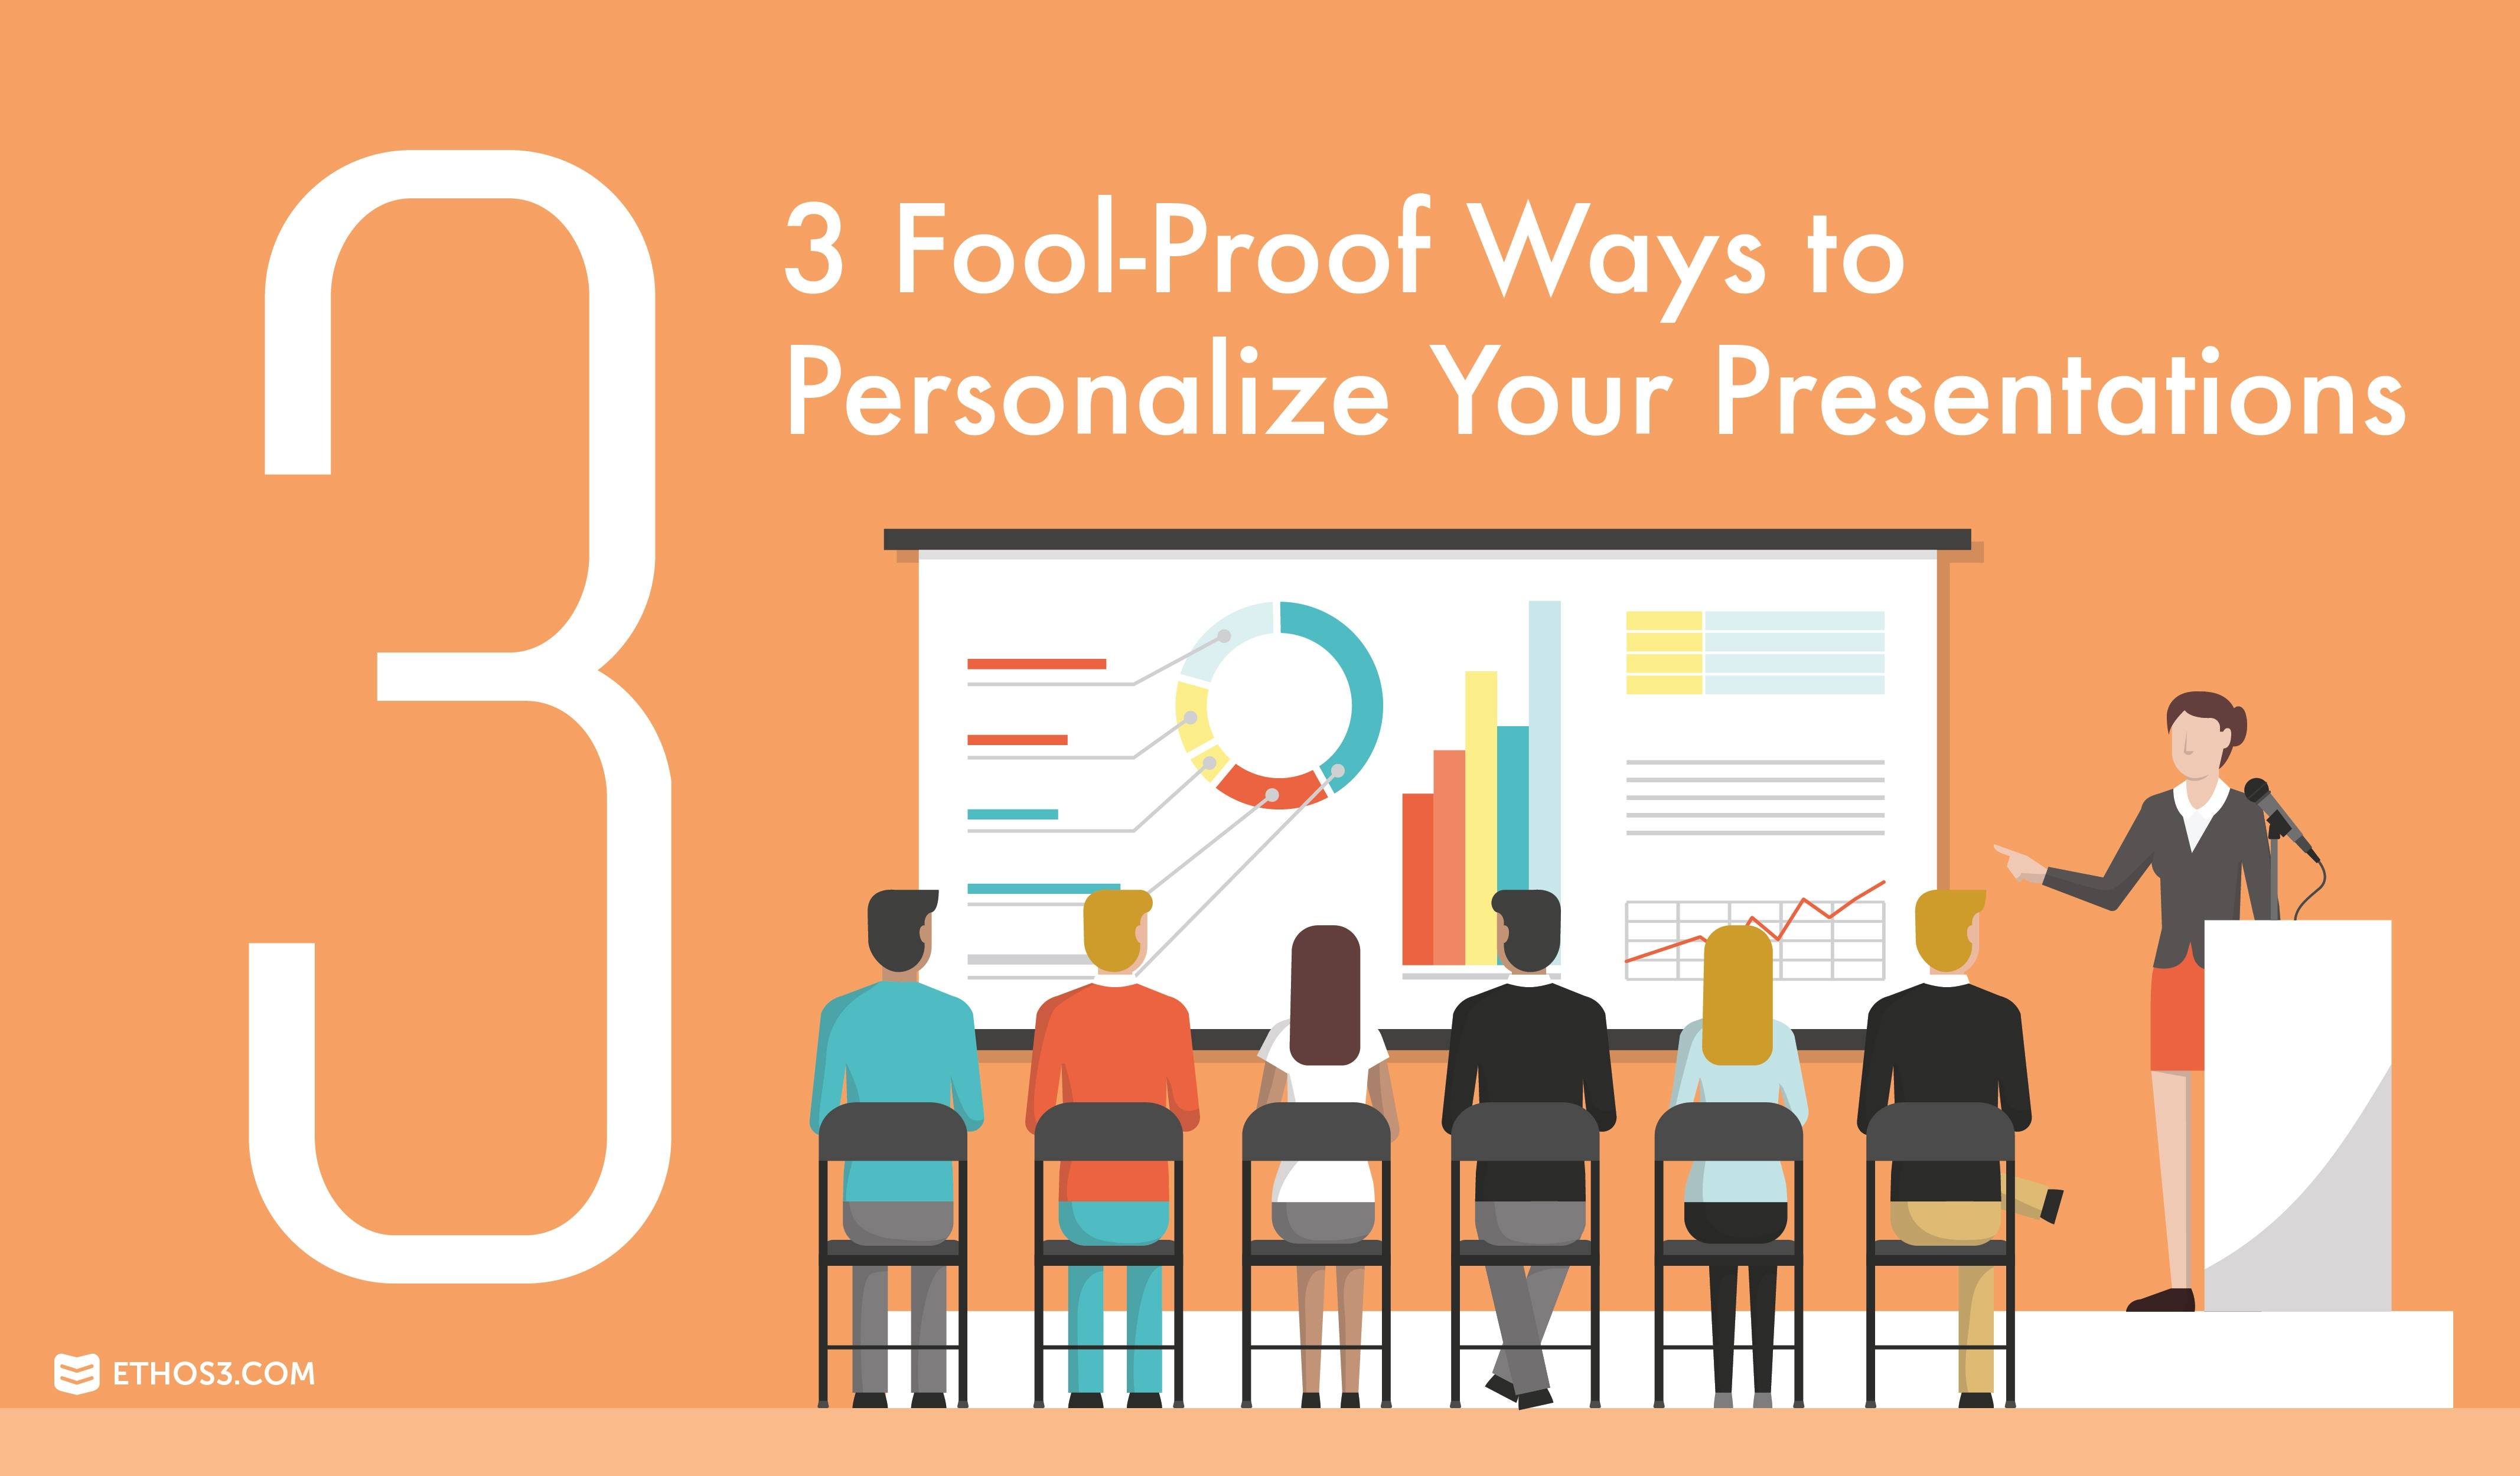 3 fool proof ways to personalize your presentations